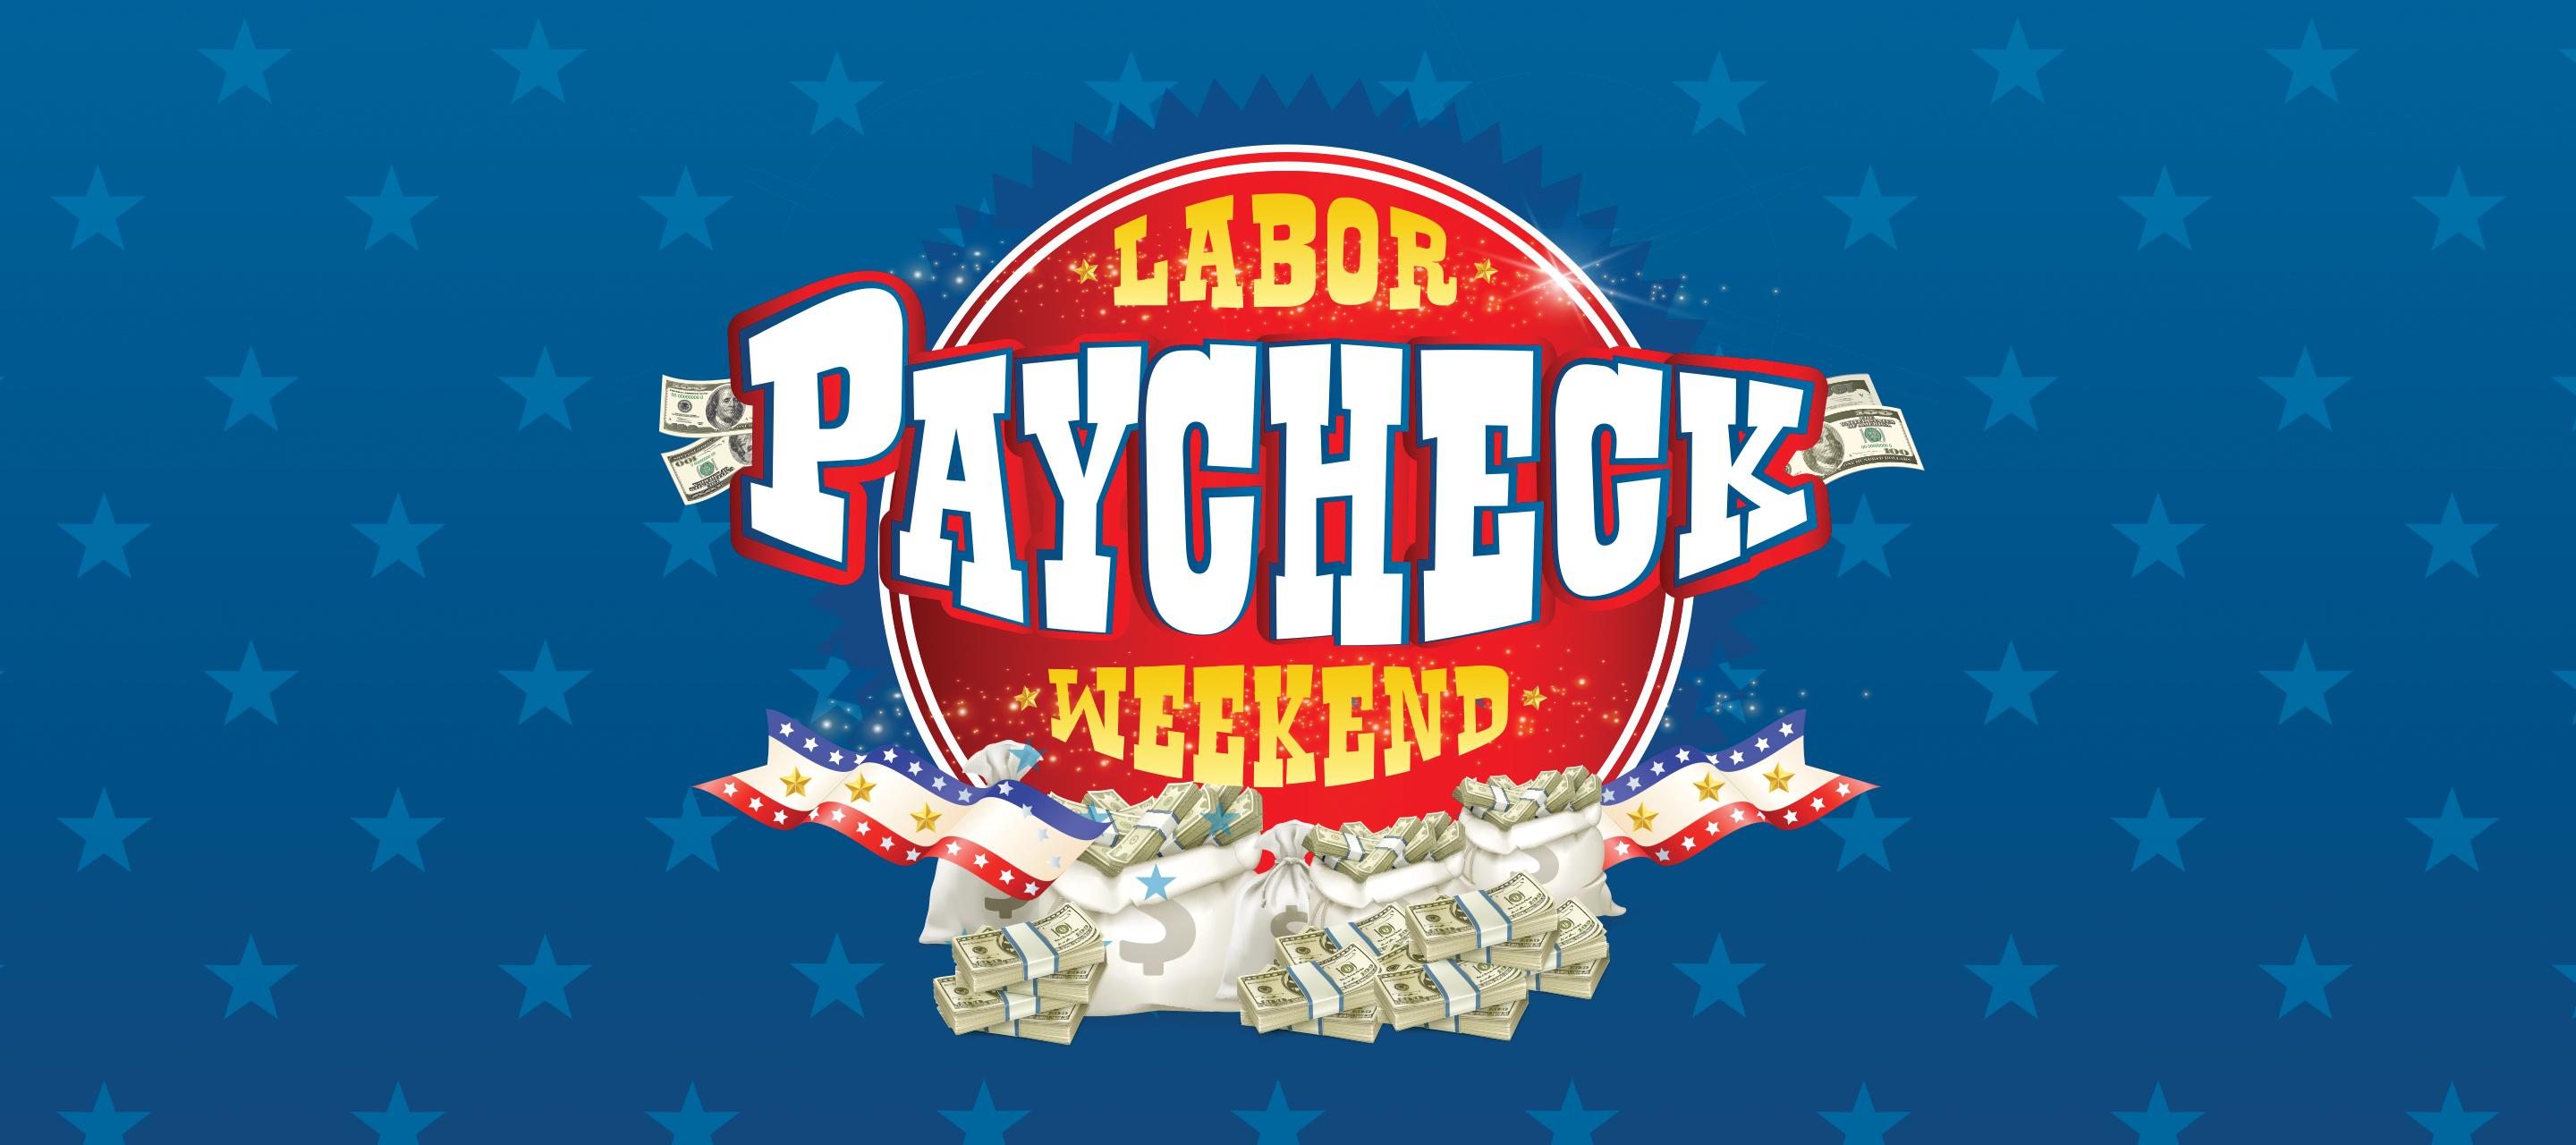 Labor Paycheck Weekend